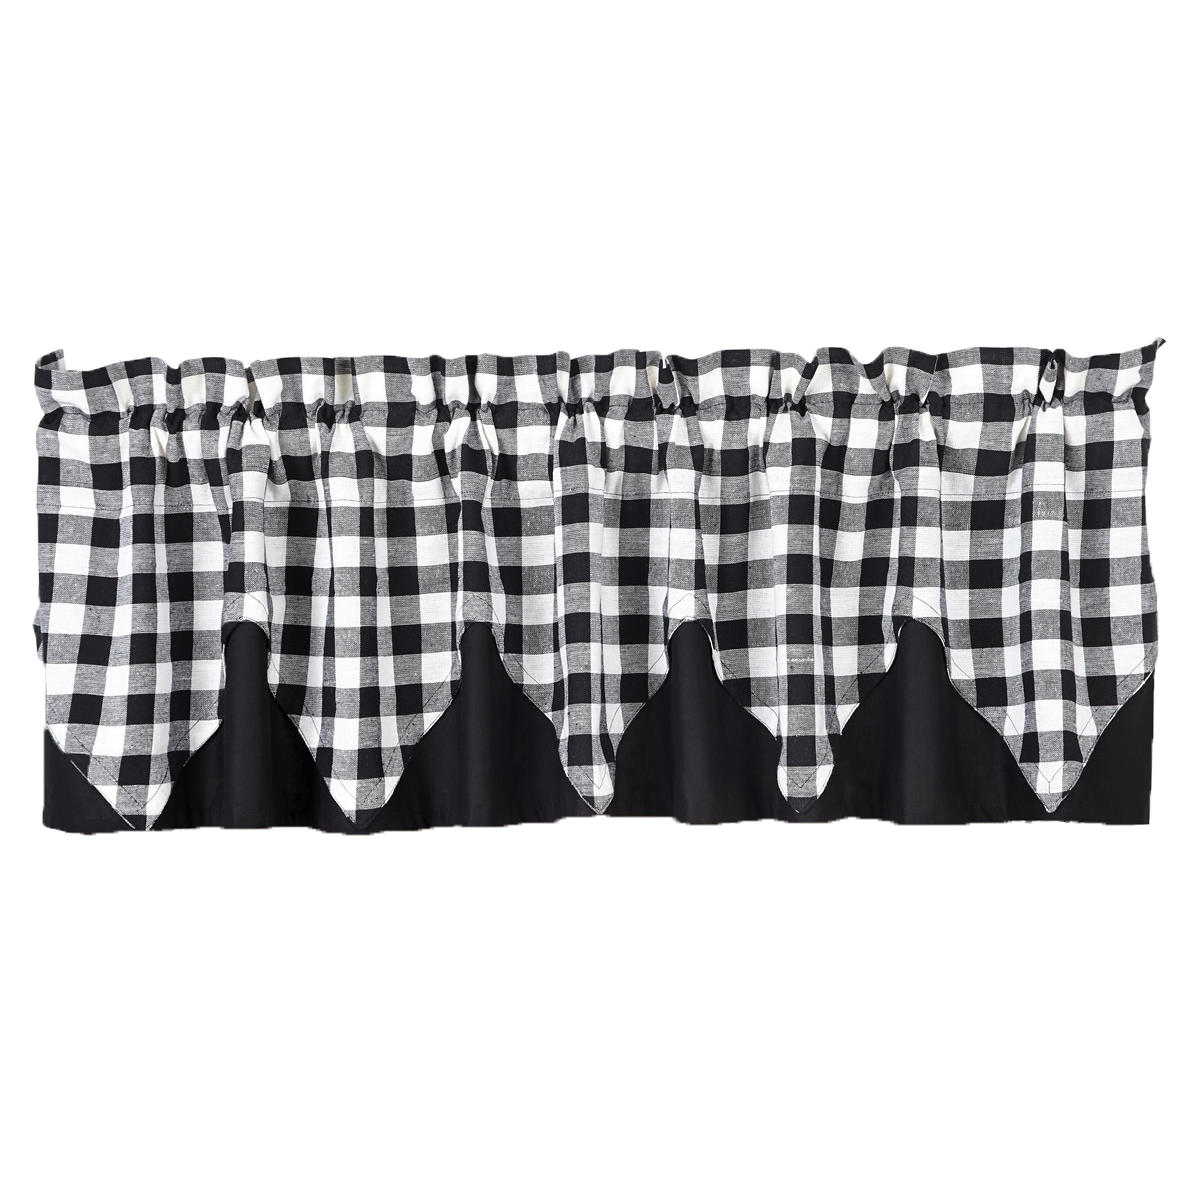 BUFFALO BLACK CHECK Valance Layered Lined - 16x72 - Jet Black/Cotton White - VHC